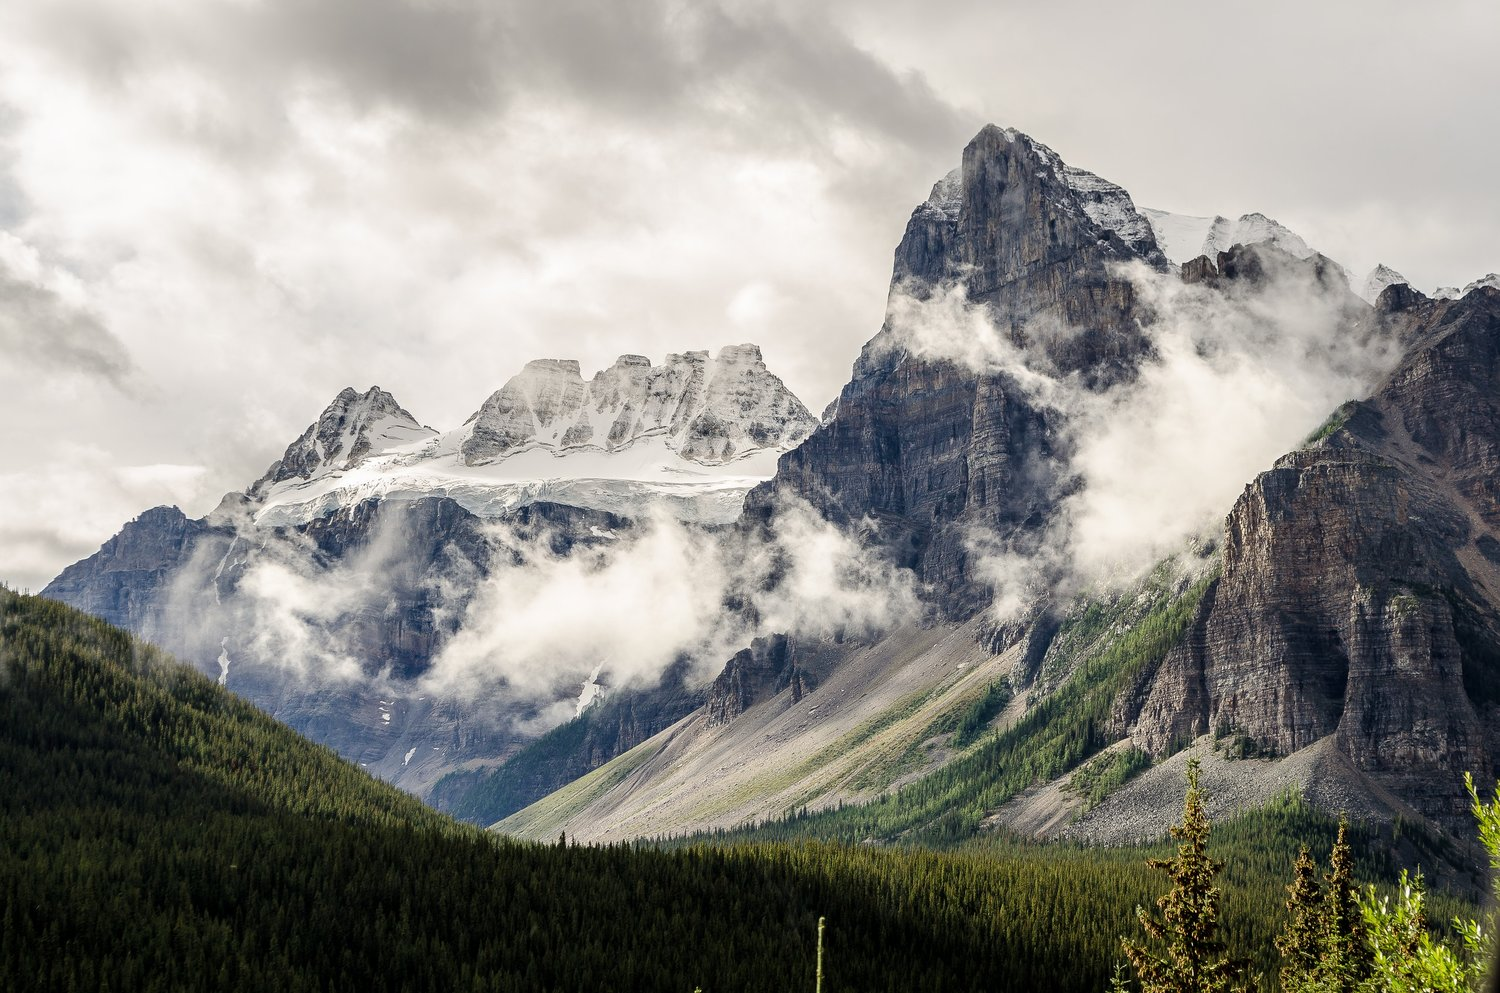 A Photographer's Guide to Banff National Park